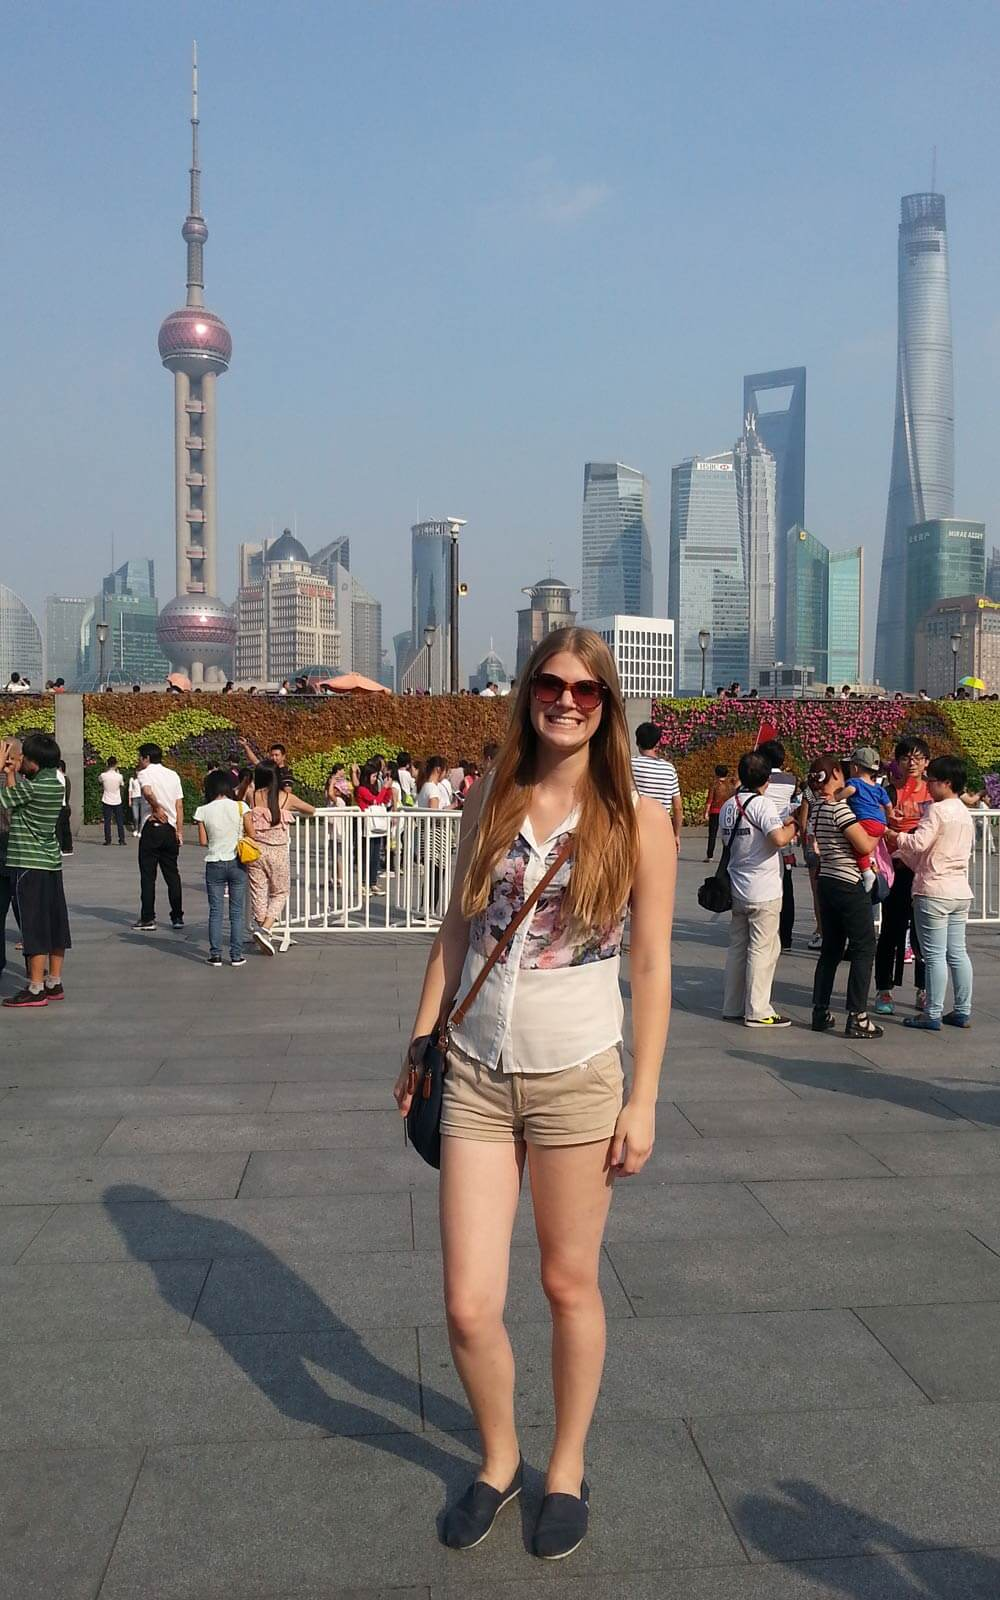 Touristin in China